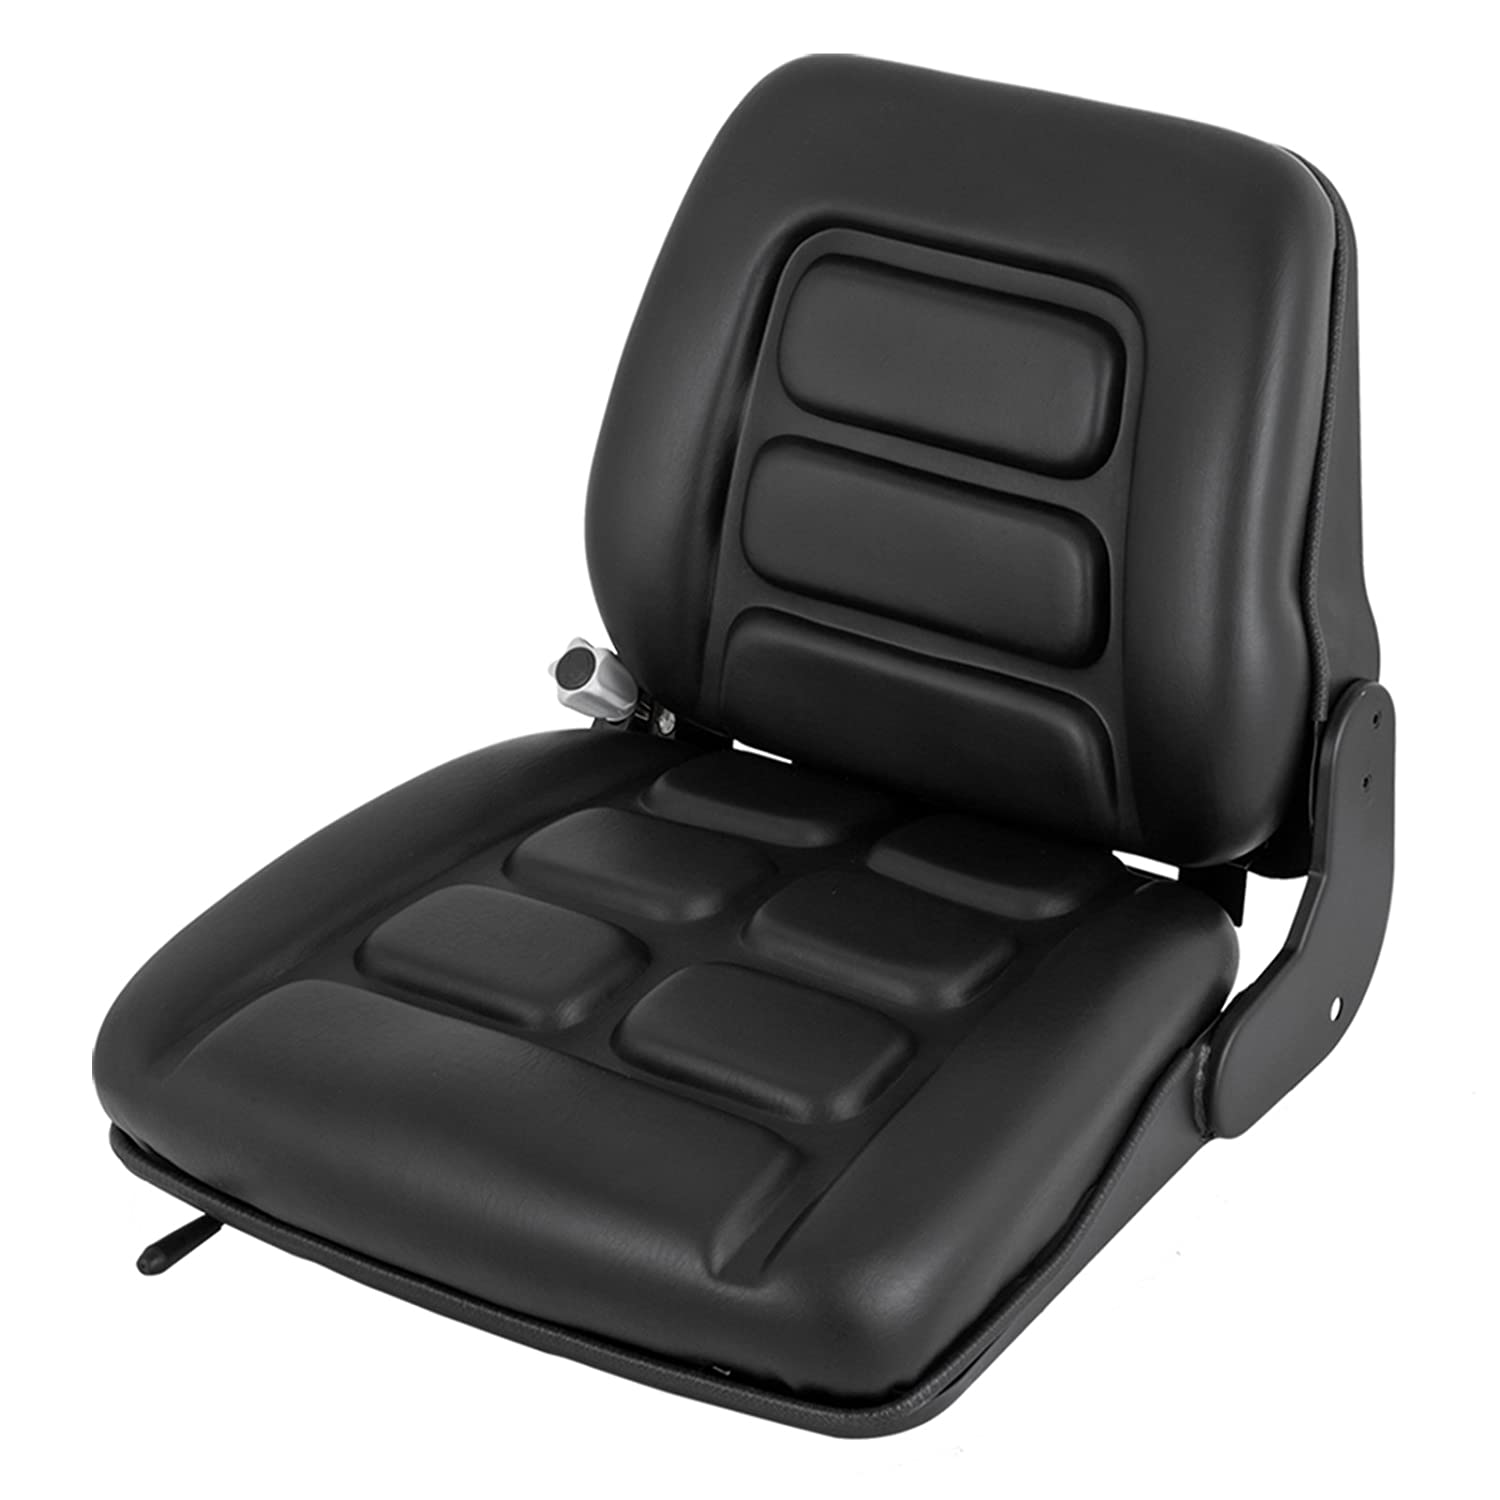 Happybuy Universal Forklift Seat Vinyl Forklift Suspension Seat 3-Stage Weight Adjustable Forklift Seat Fits Clark Cat Hyster Yale Toyota